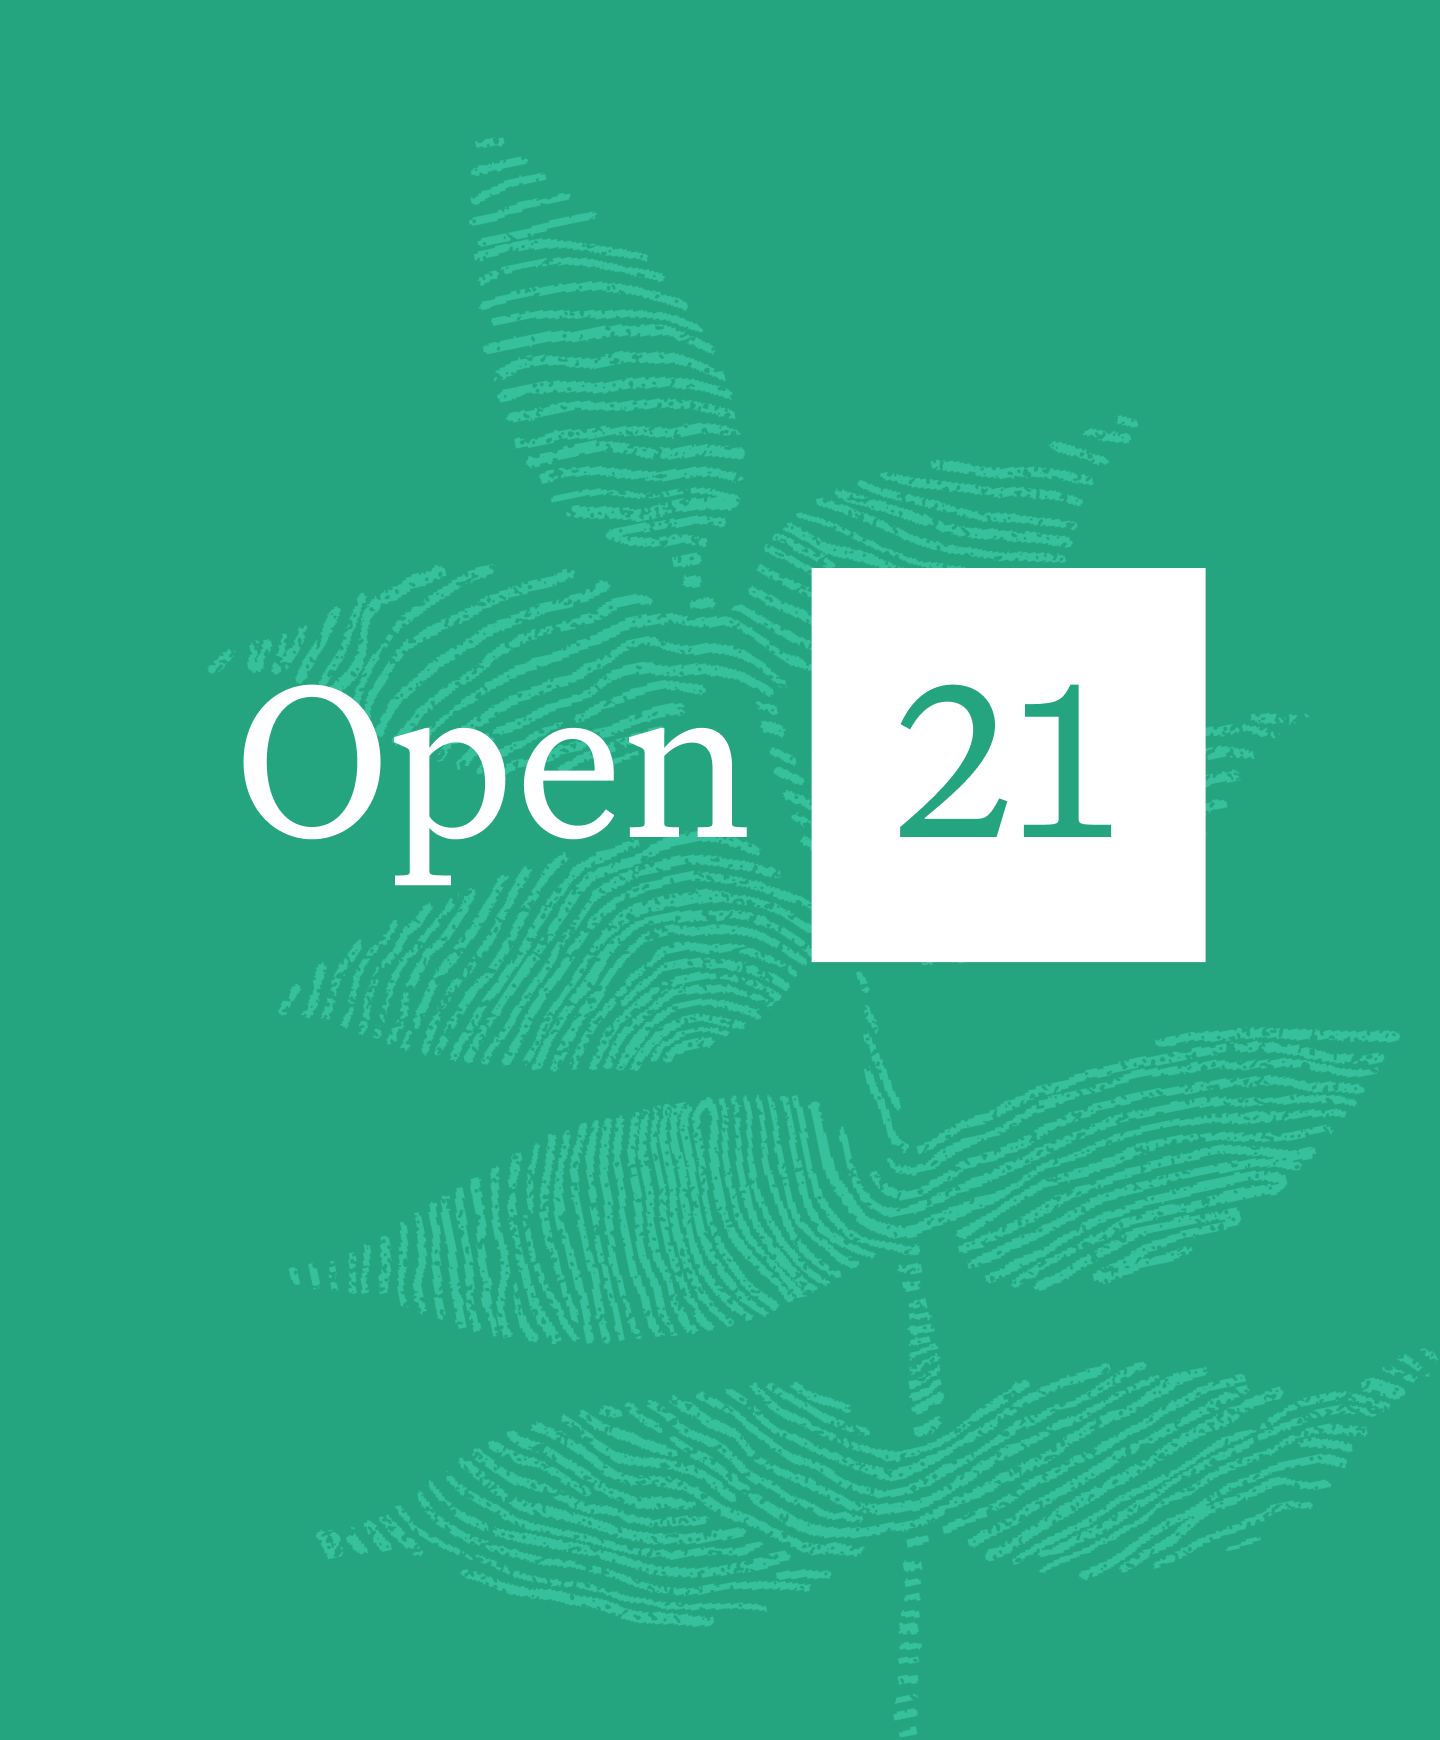 Image of Open 21 logo and botanical illustration